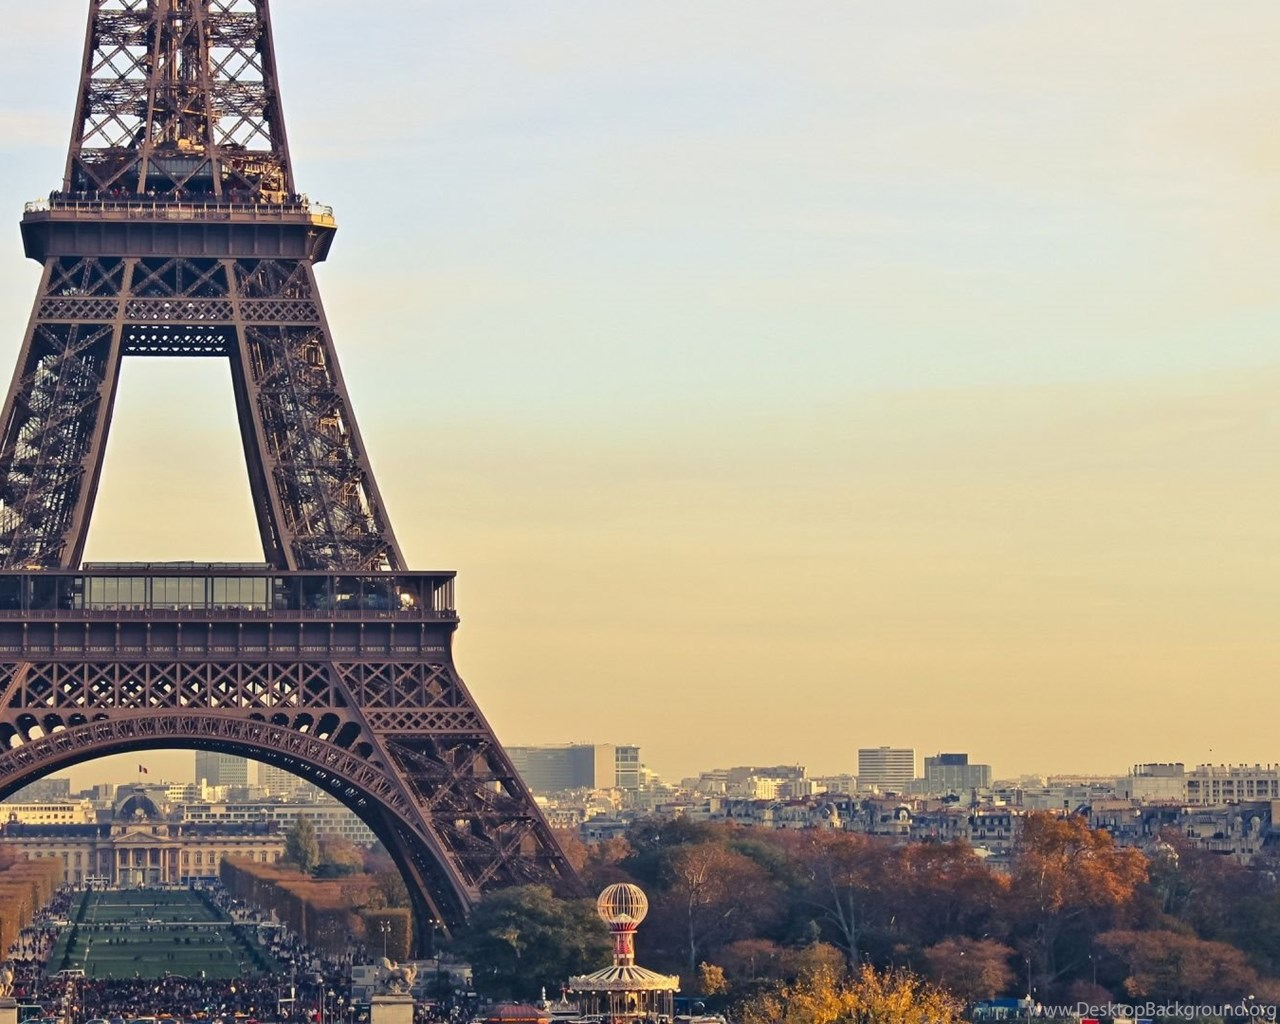 Eiffel tower paris background hd desktop - Paris eiffel tower desktop wallpaper ...